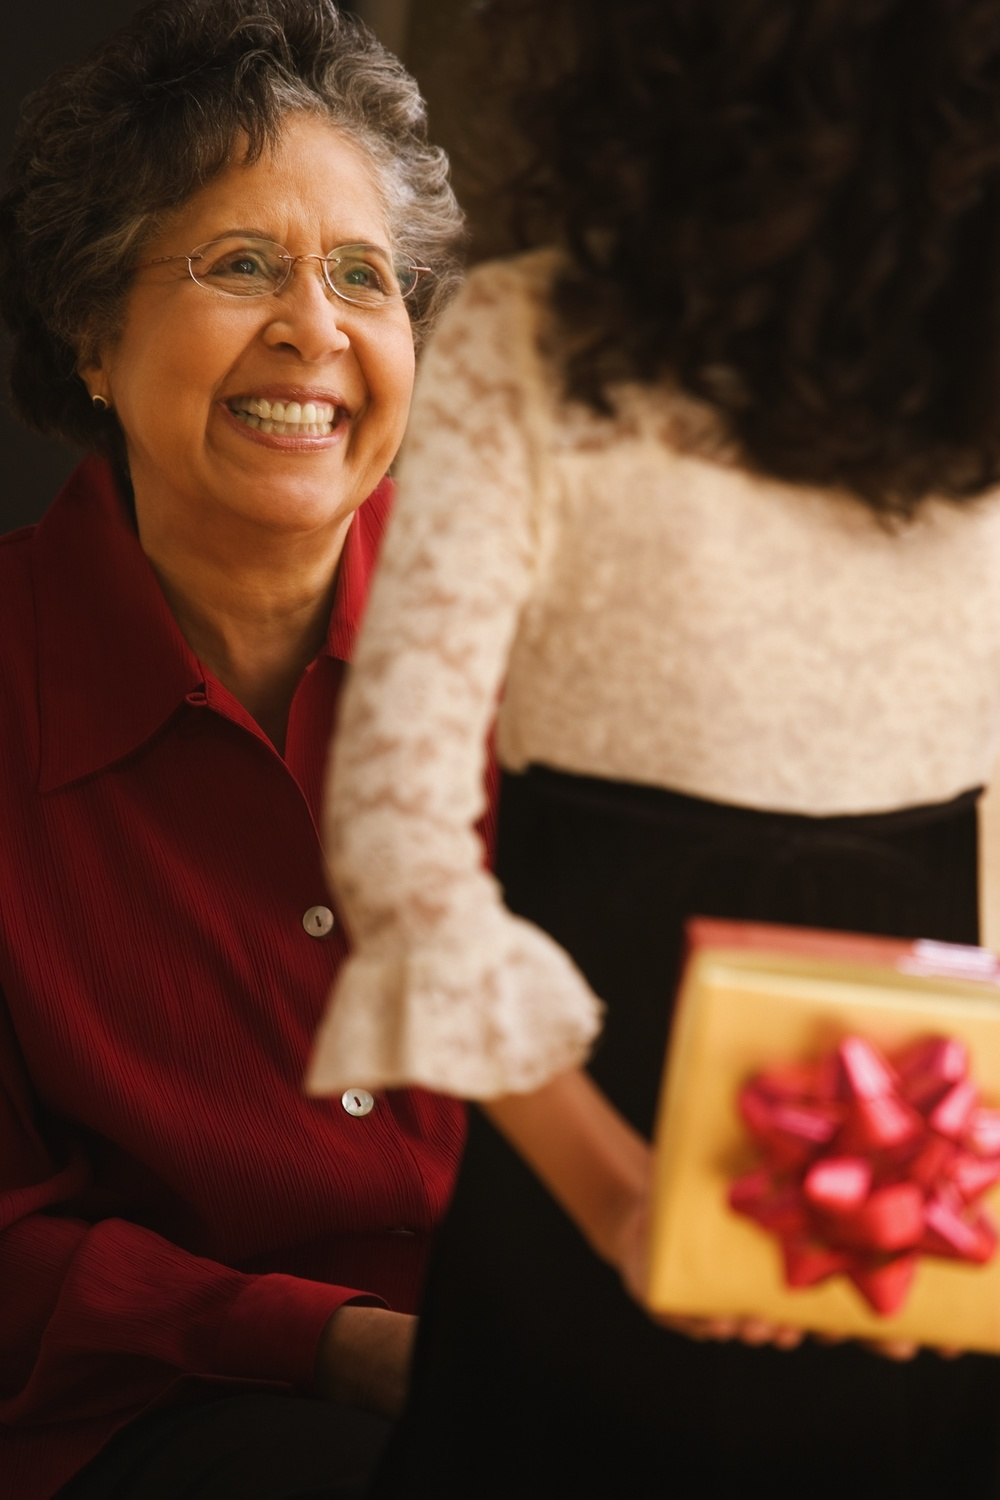 child custody mediation includes grandparents at the holidays